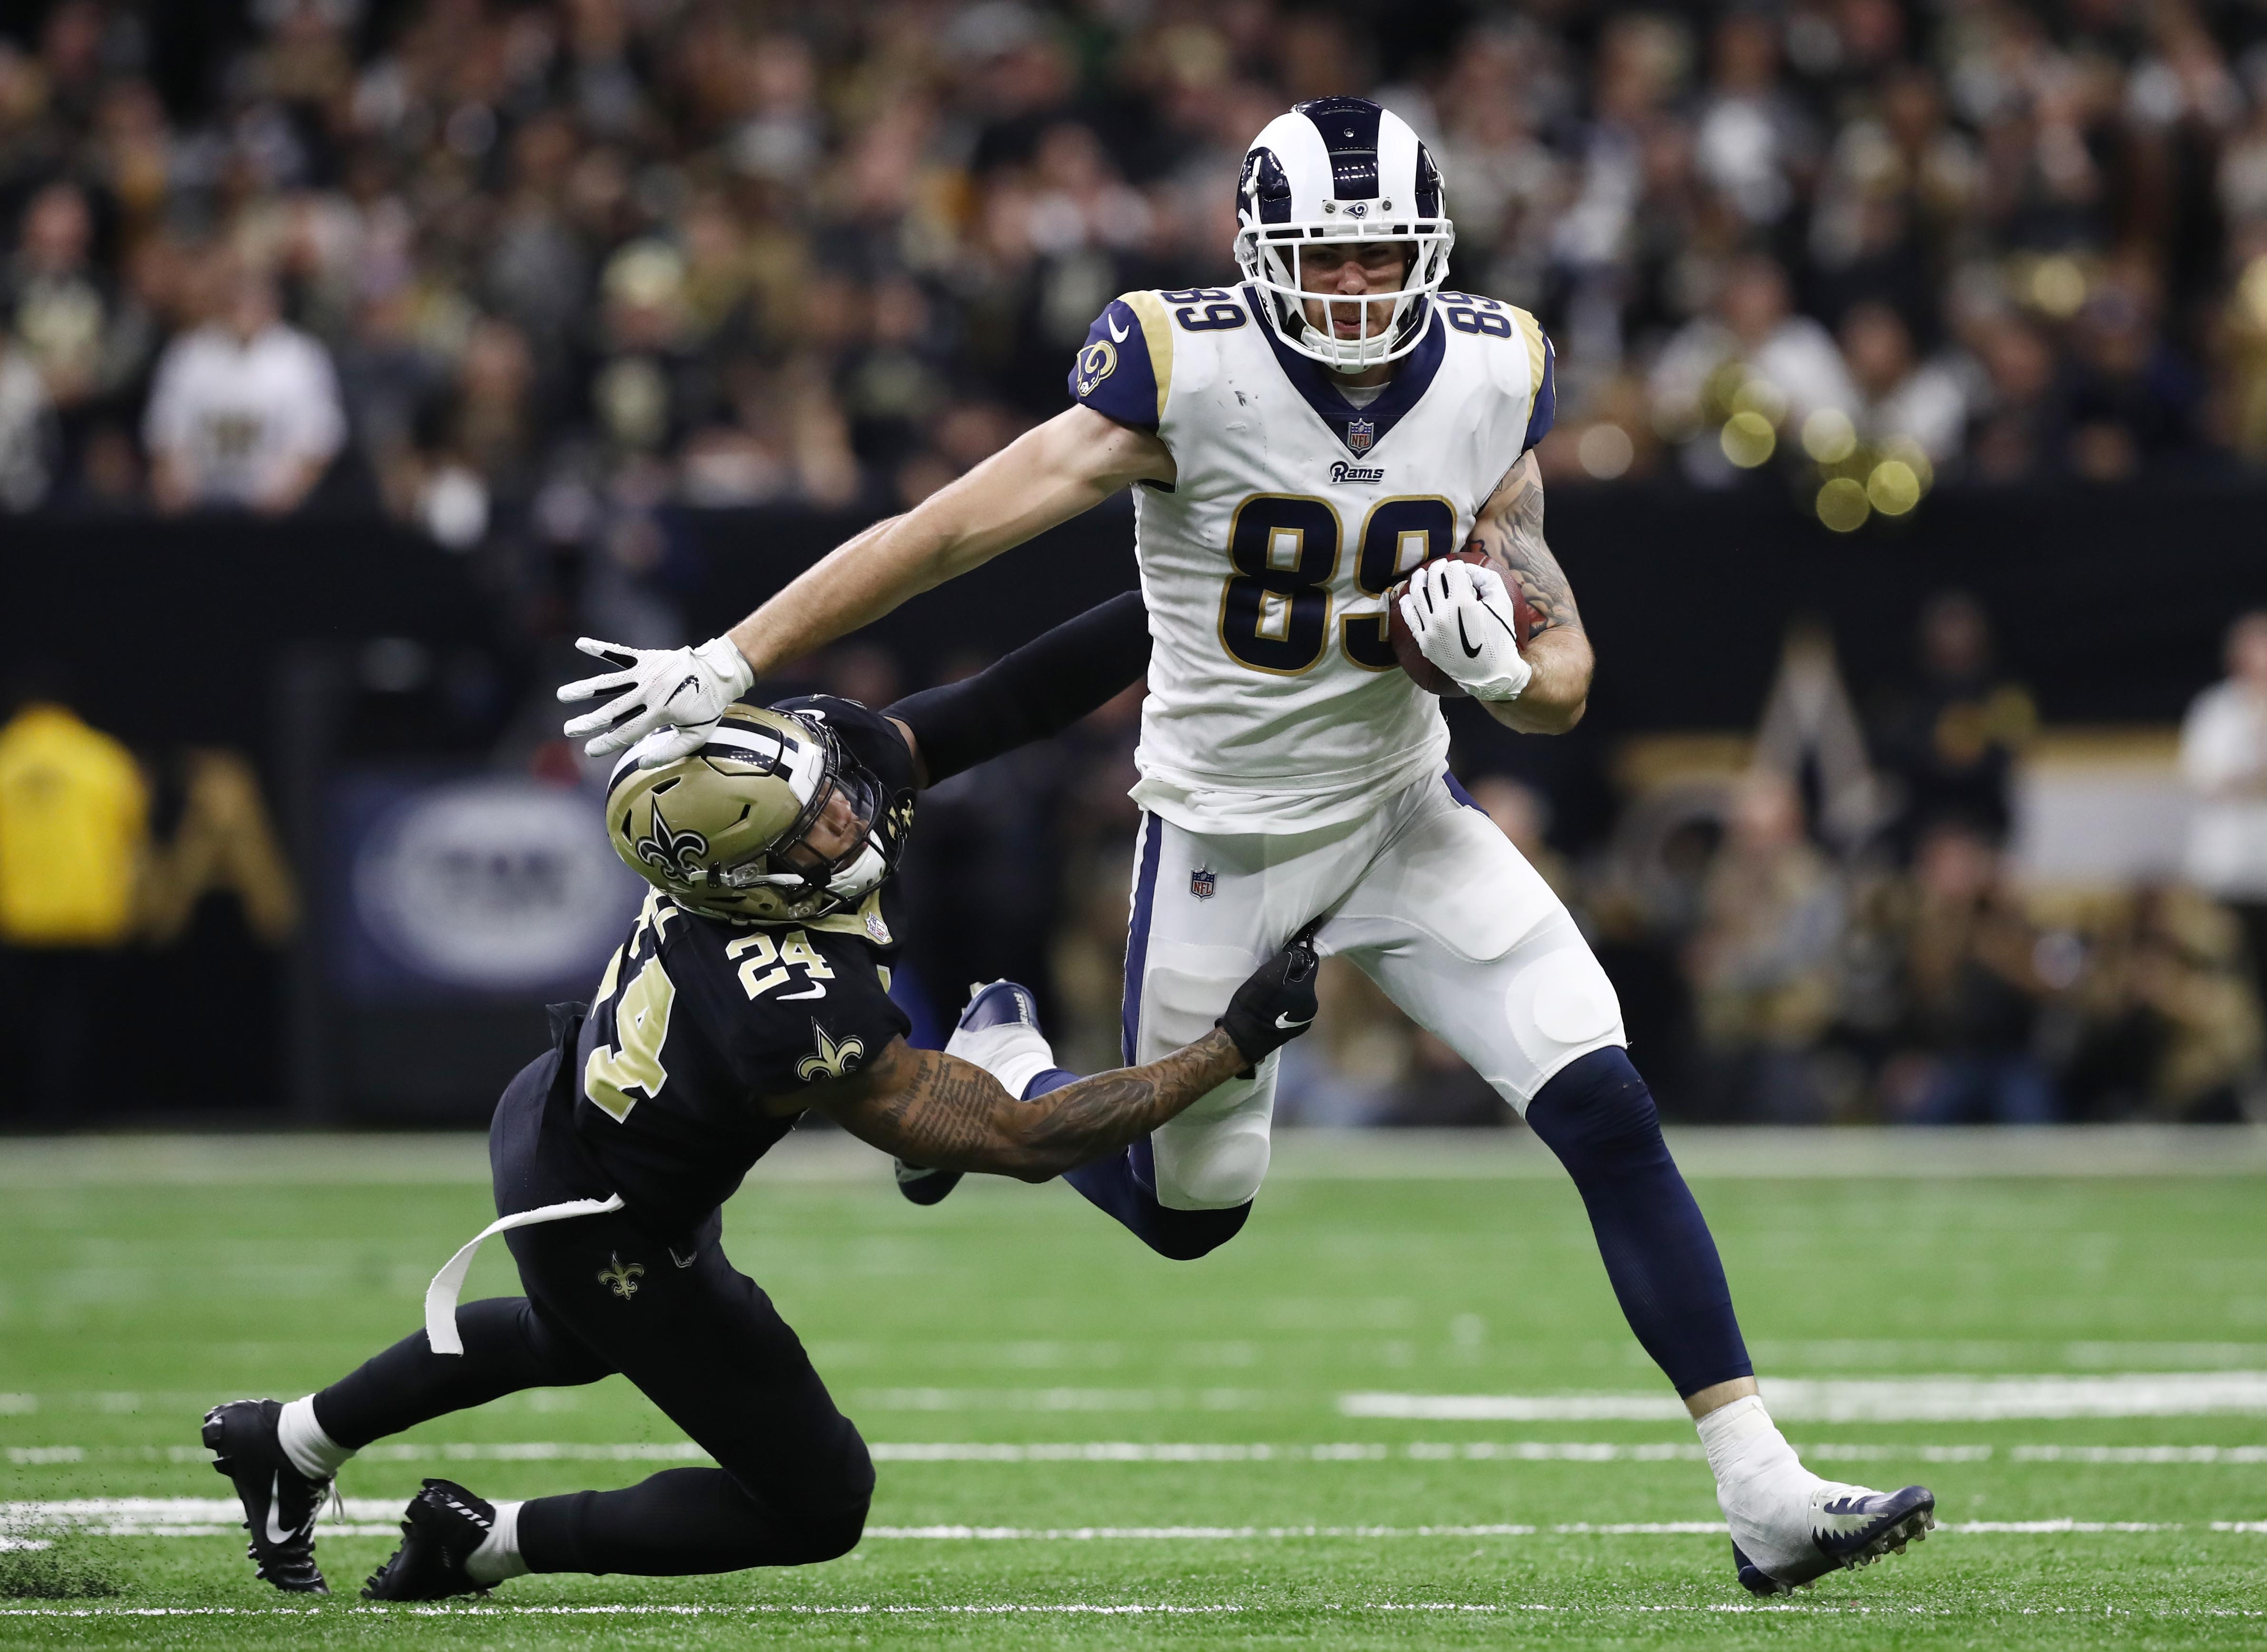 Los Angeles Rams TE Tyler Higbee gets away from New Orleans Saints S Vonn Bell during overtime in the NFC Championship, Jan. 20, 2019.